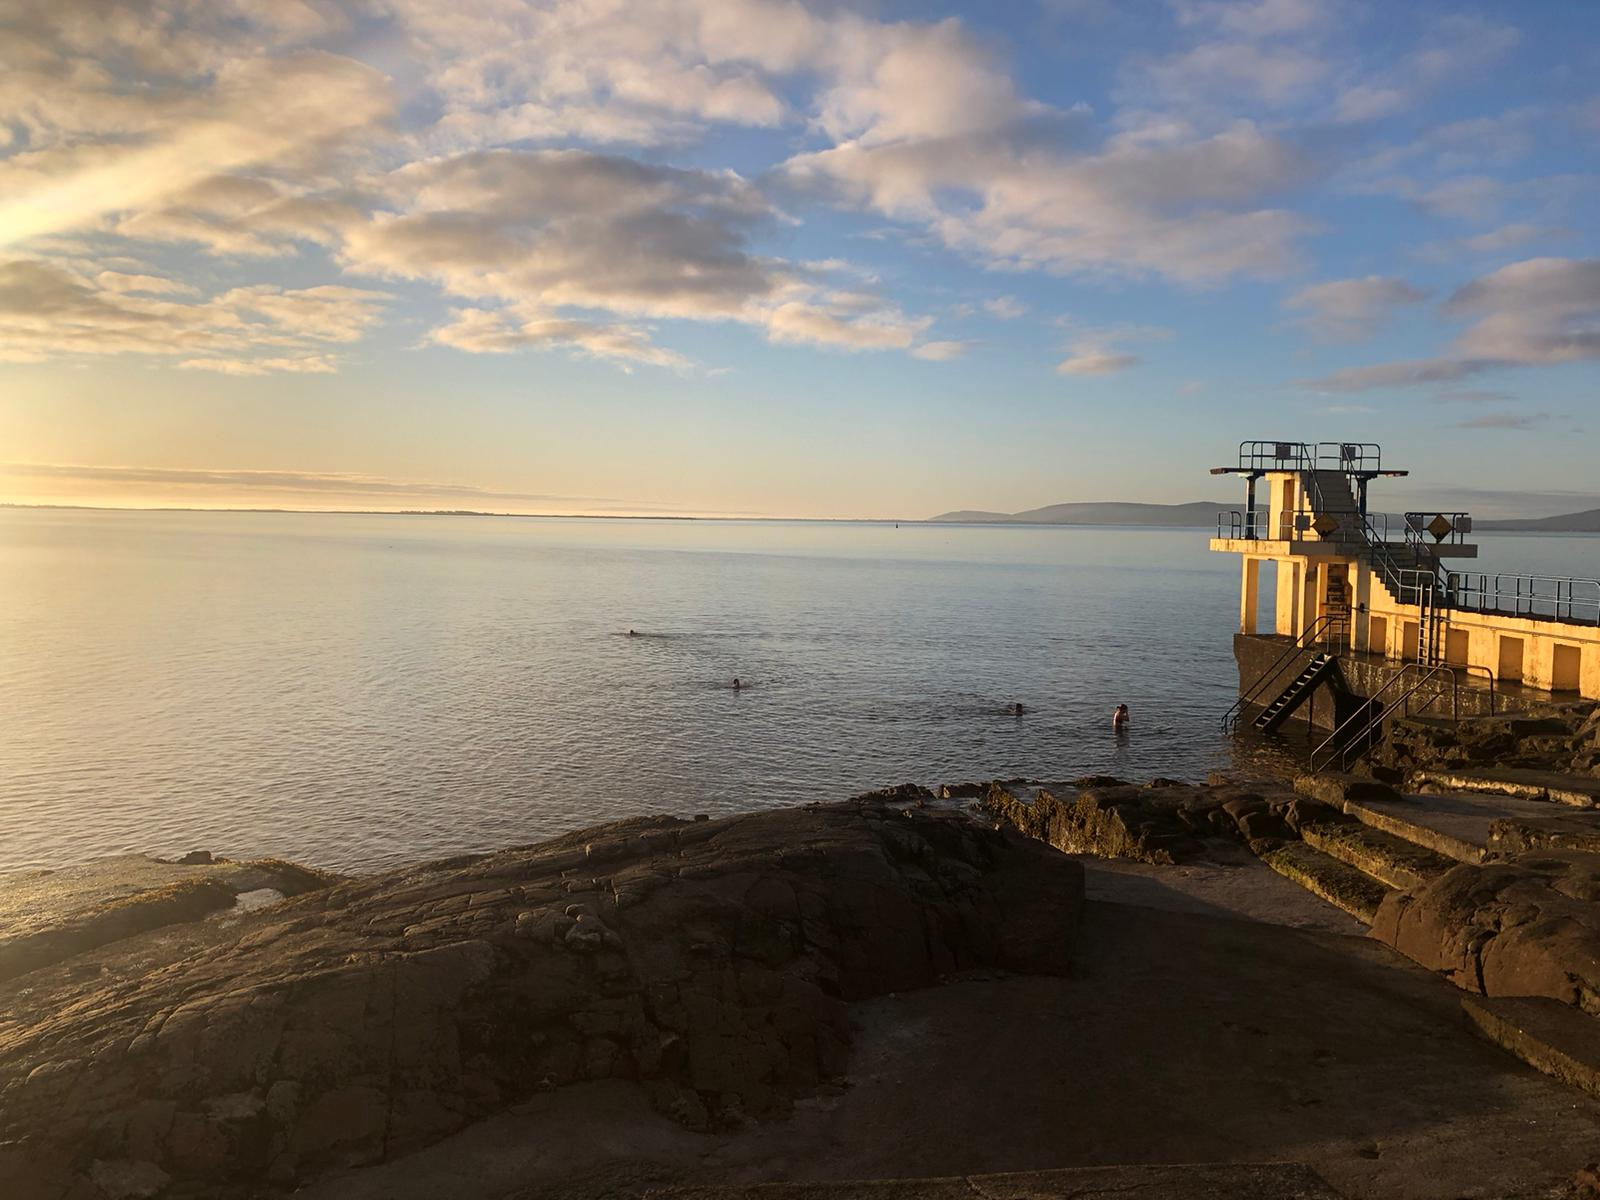 Blackrock diving tower looking into Galway Bay. Photo by Eoin Mooney